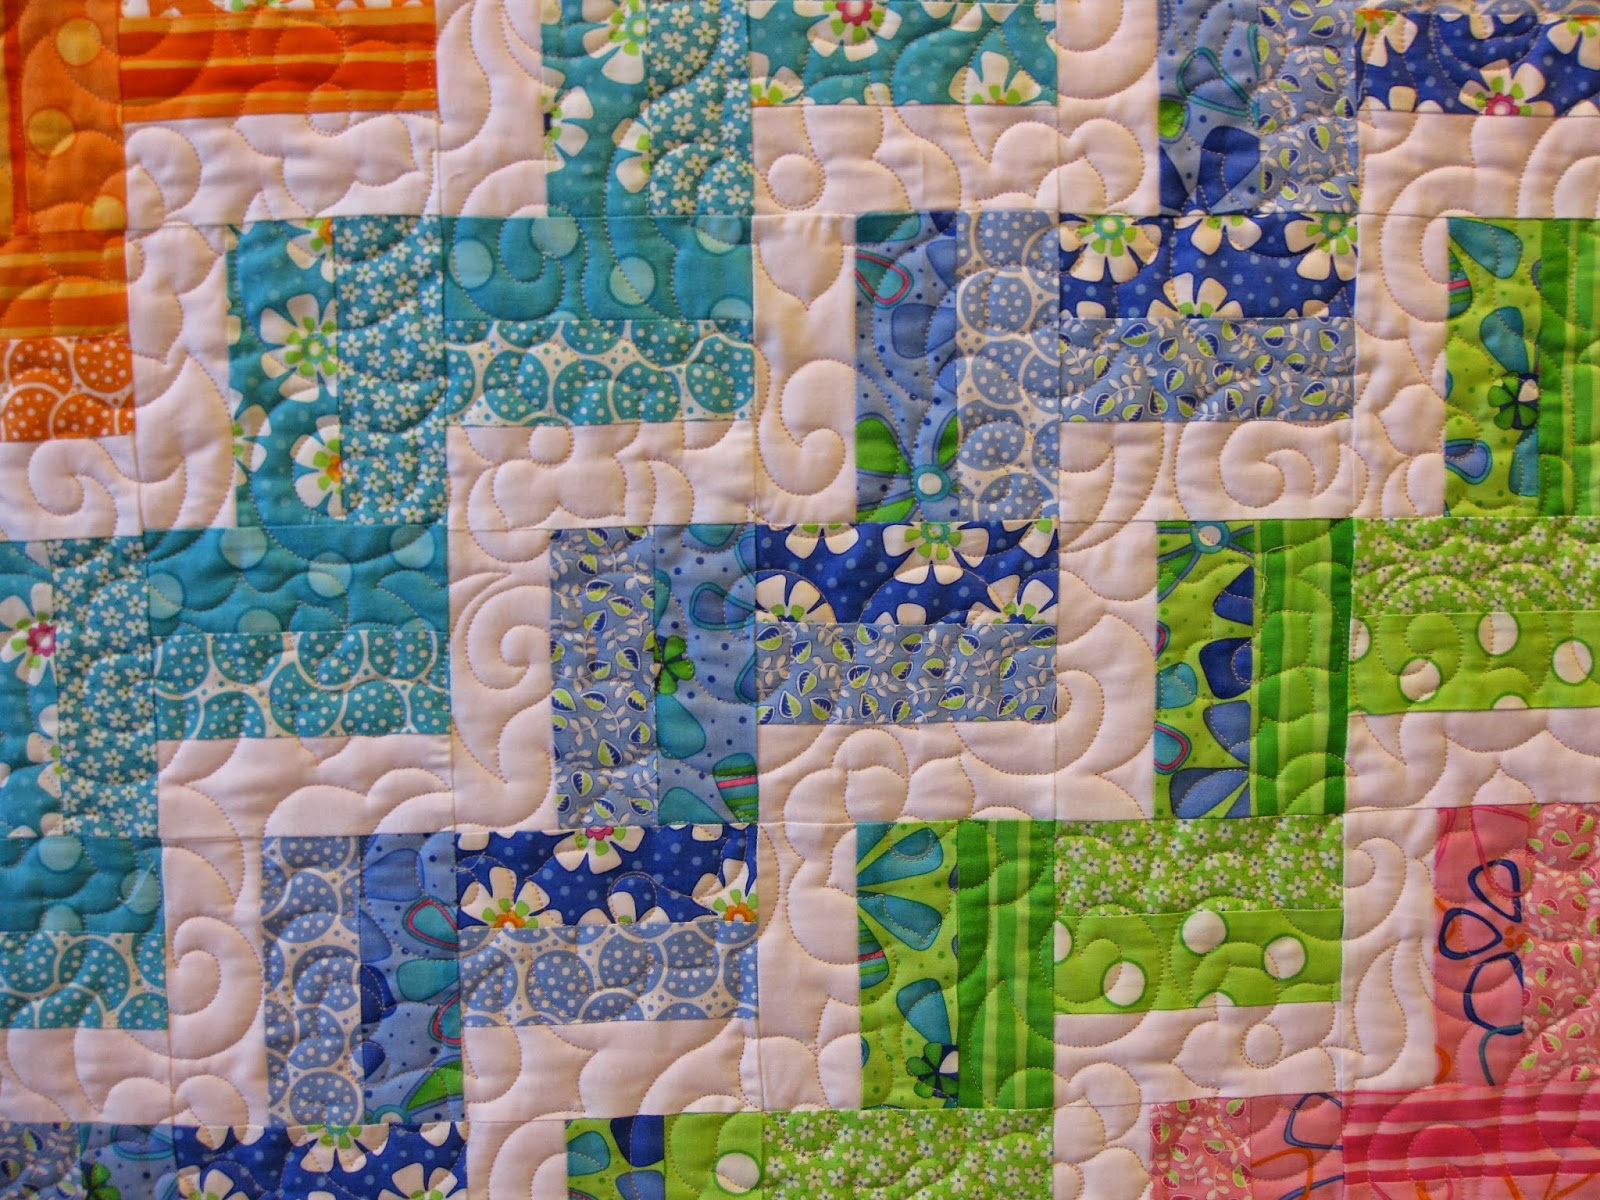 Millie's Quilting: String and Rail Fence quilts : zig zag rail fence quilt pattern - Adamdwight.com